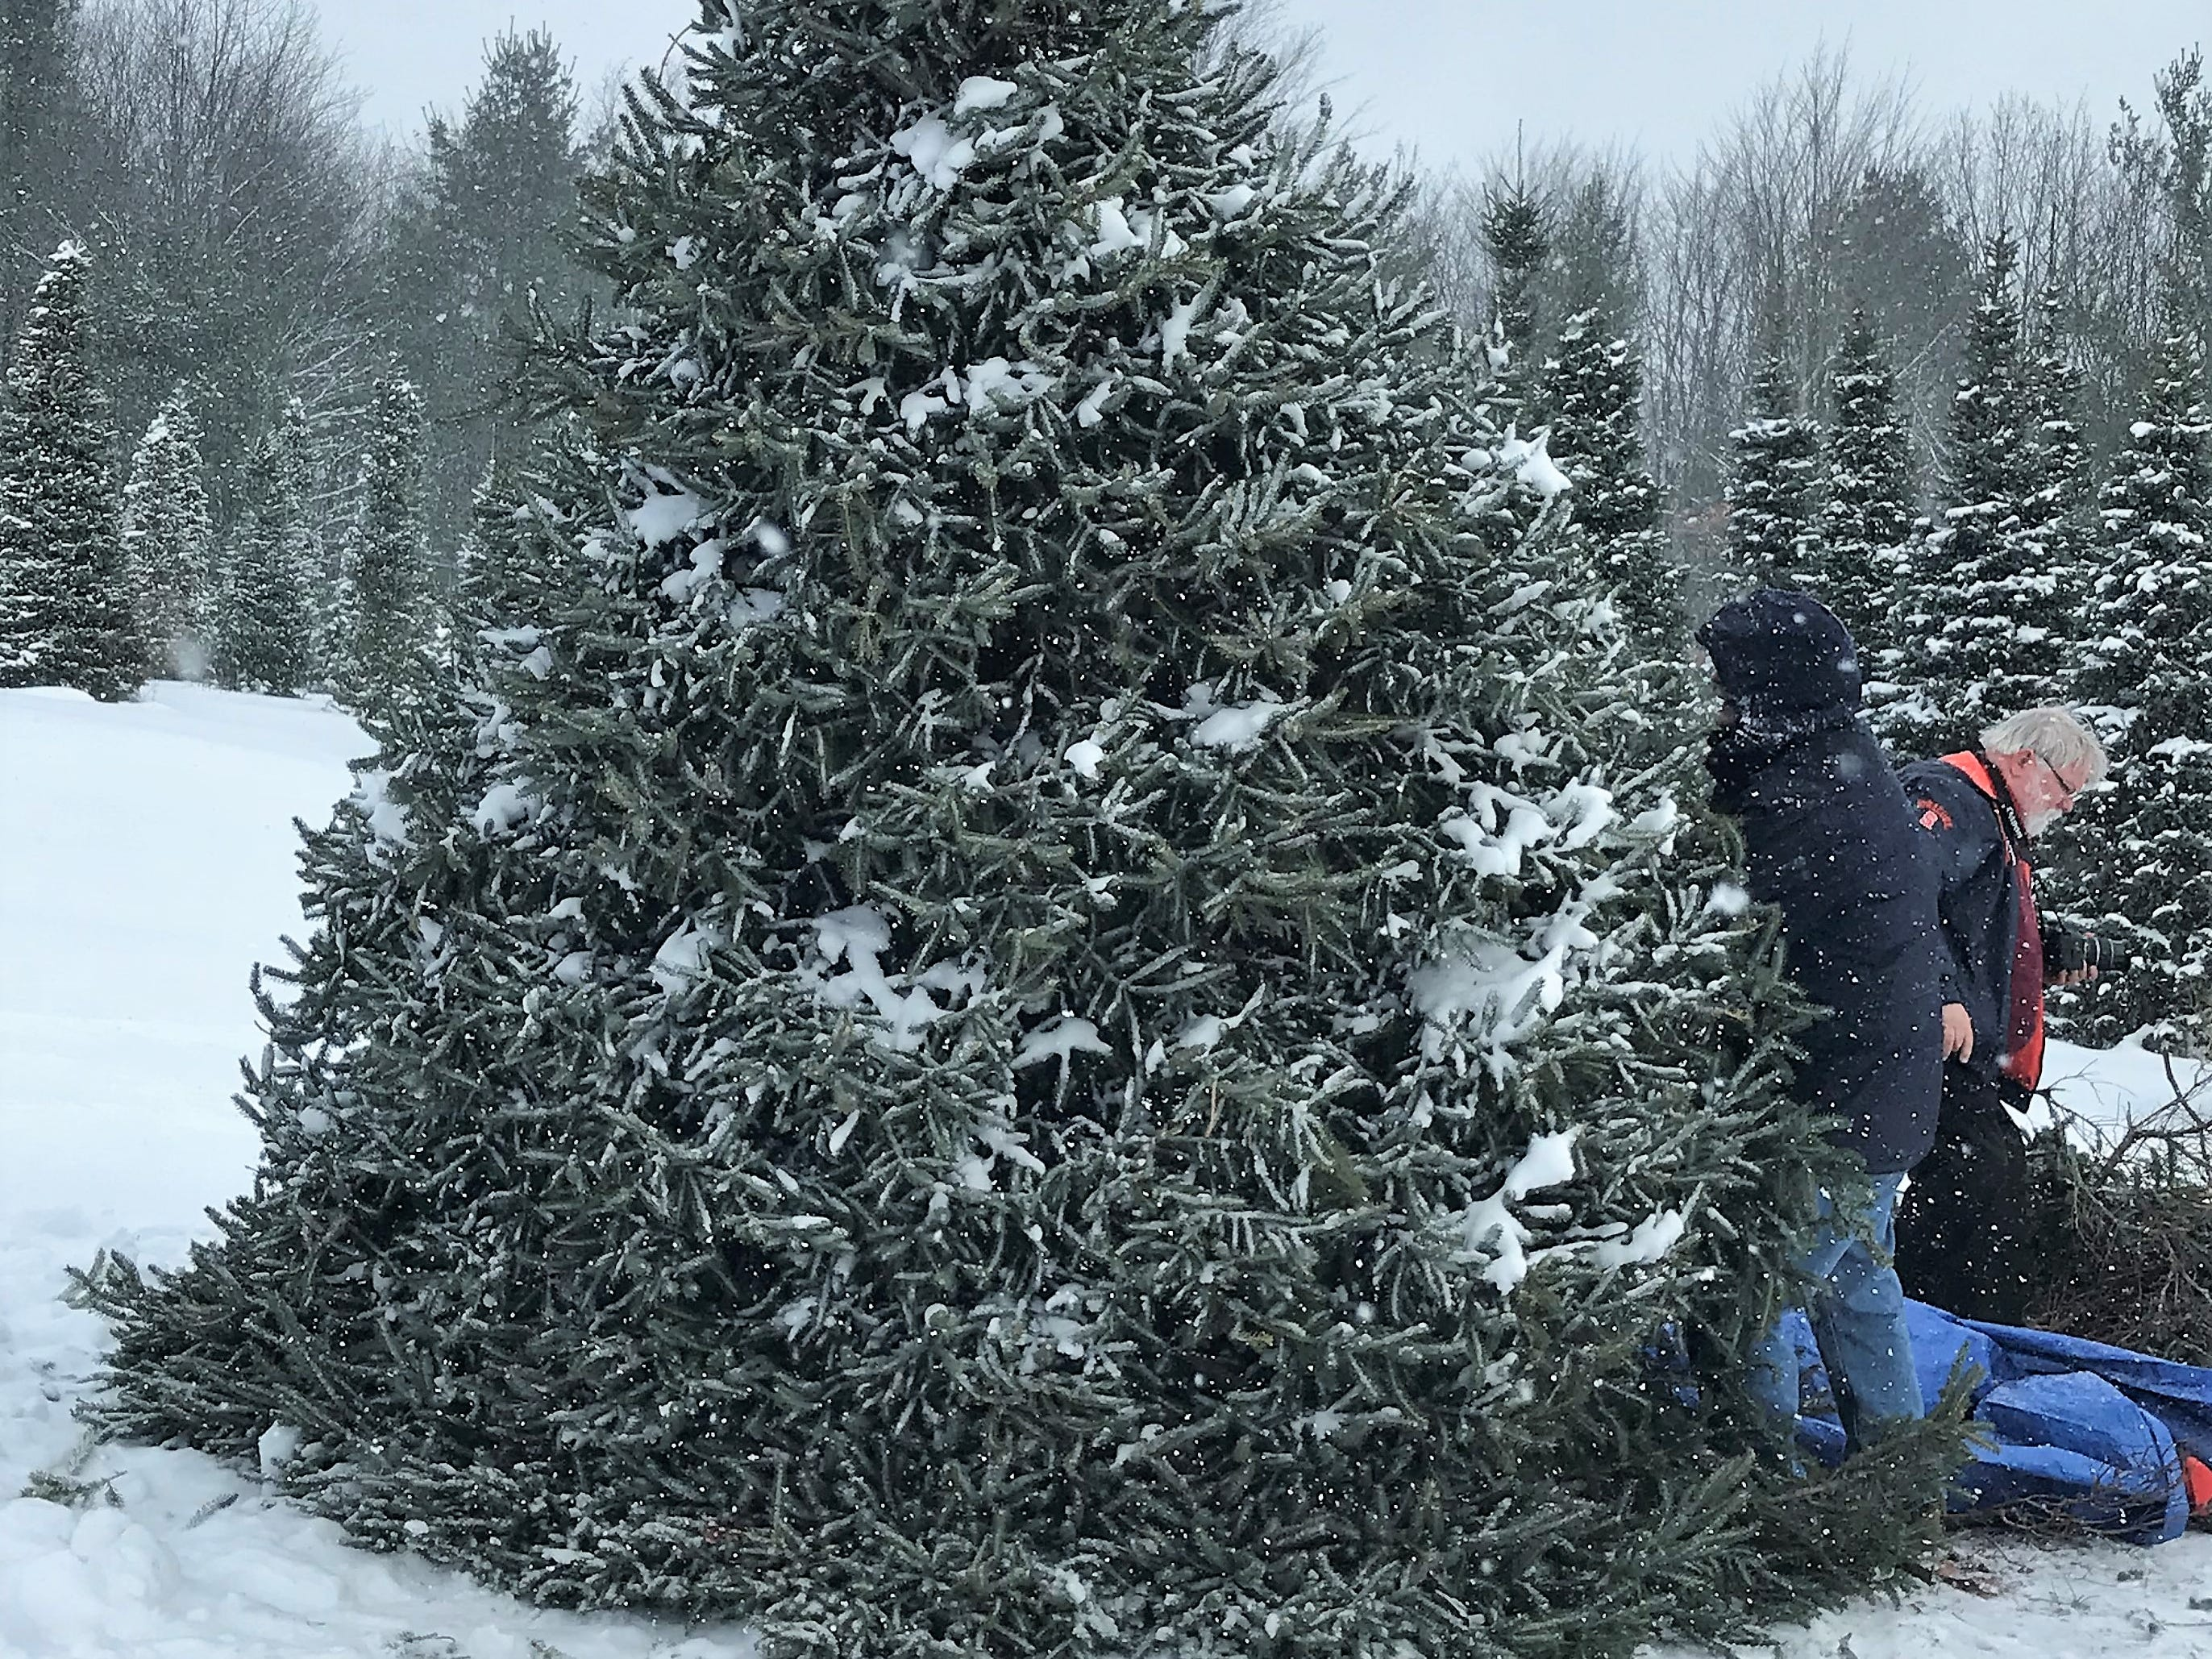 The Norway spruce selected for this year's Arctic League broadcast starts to come down.